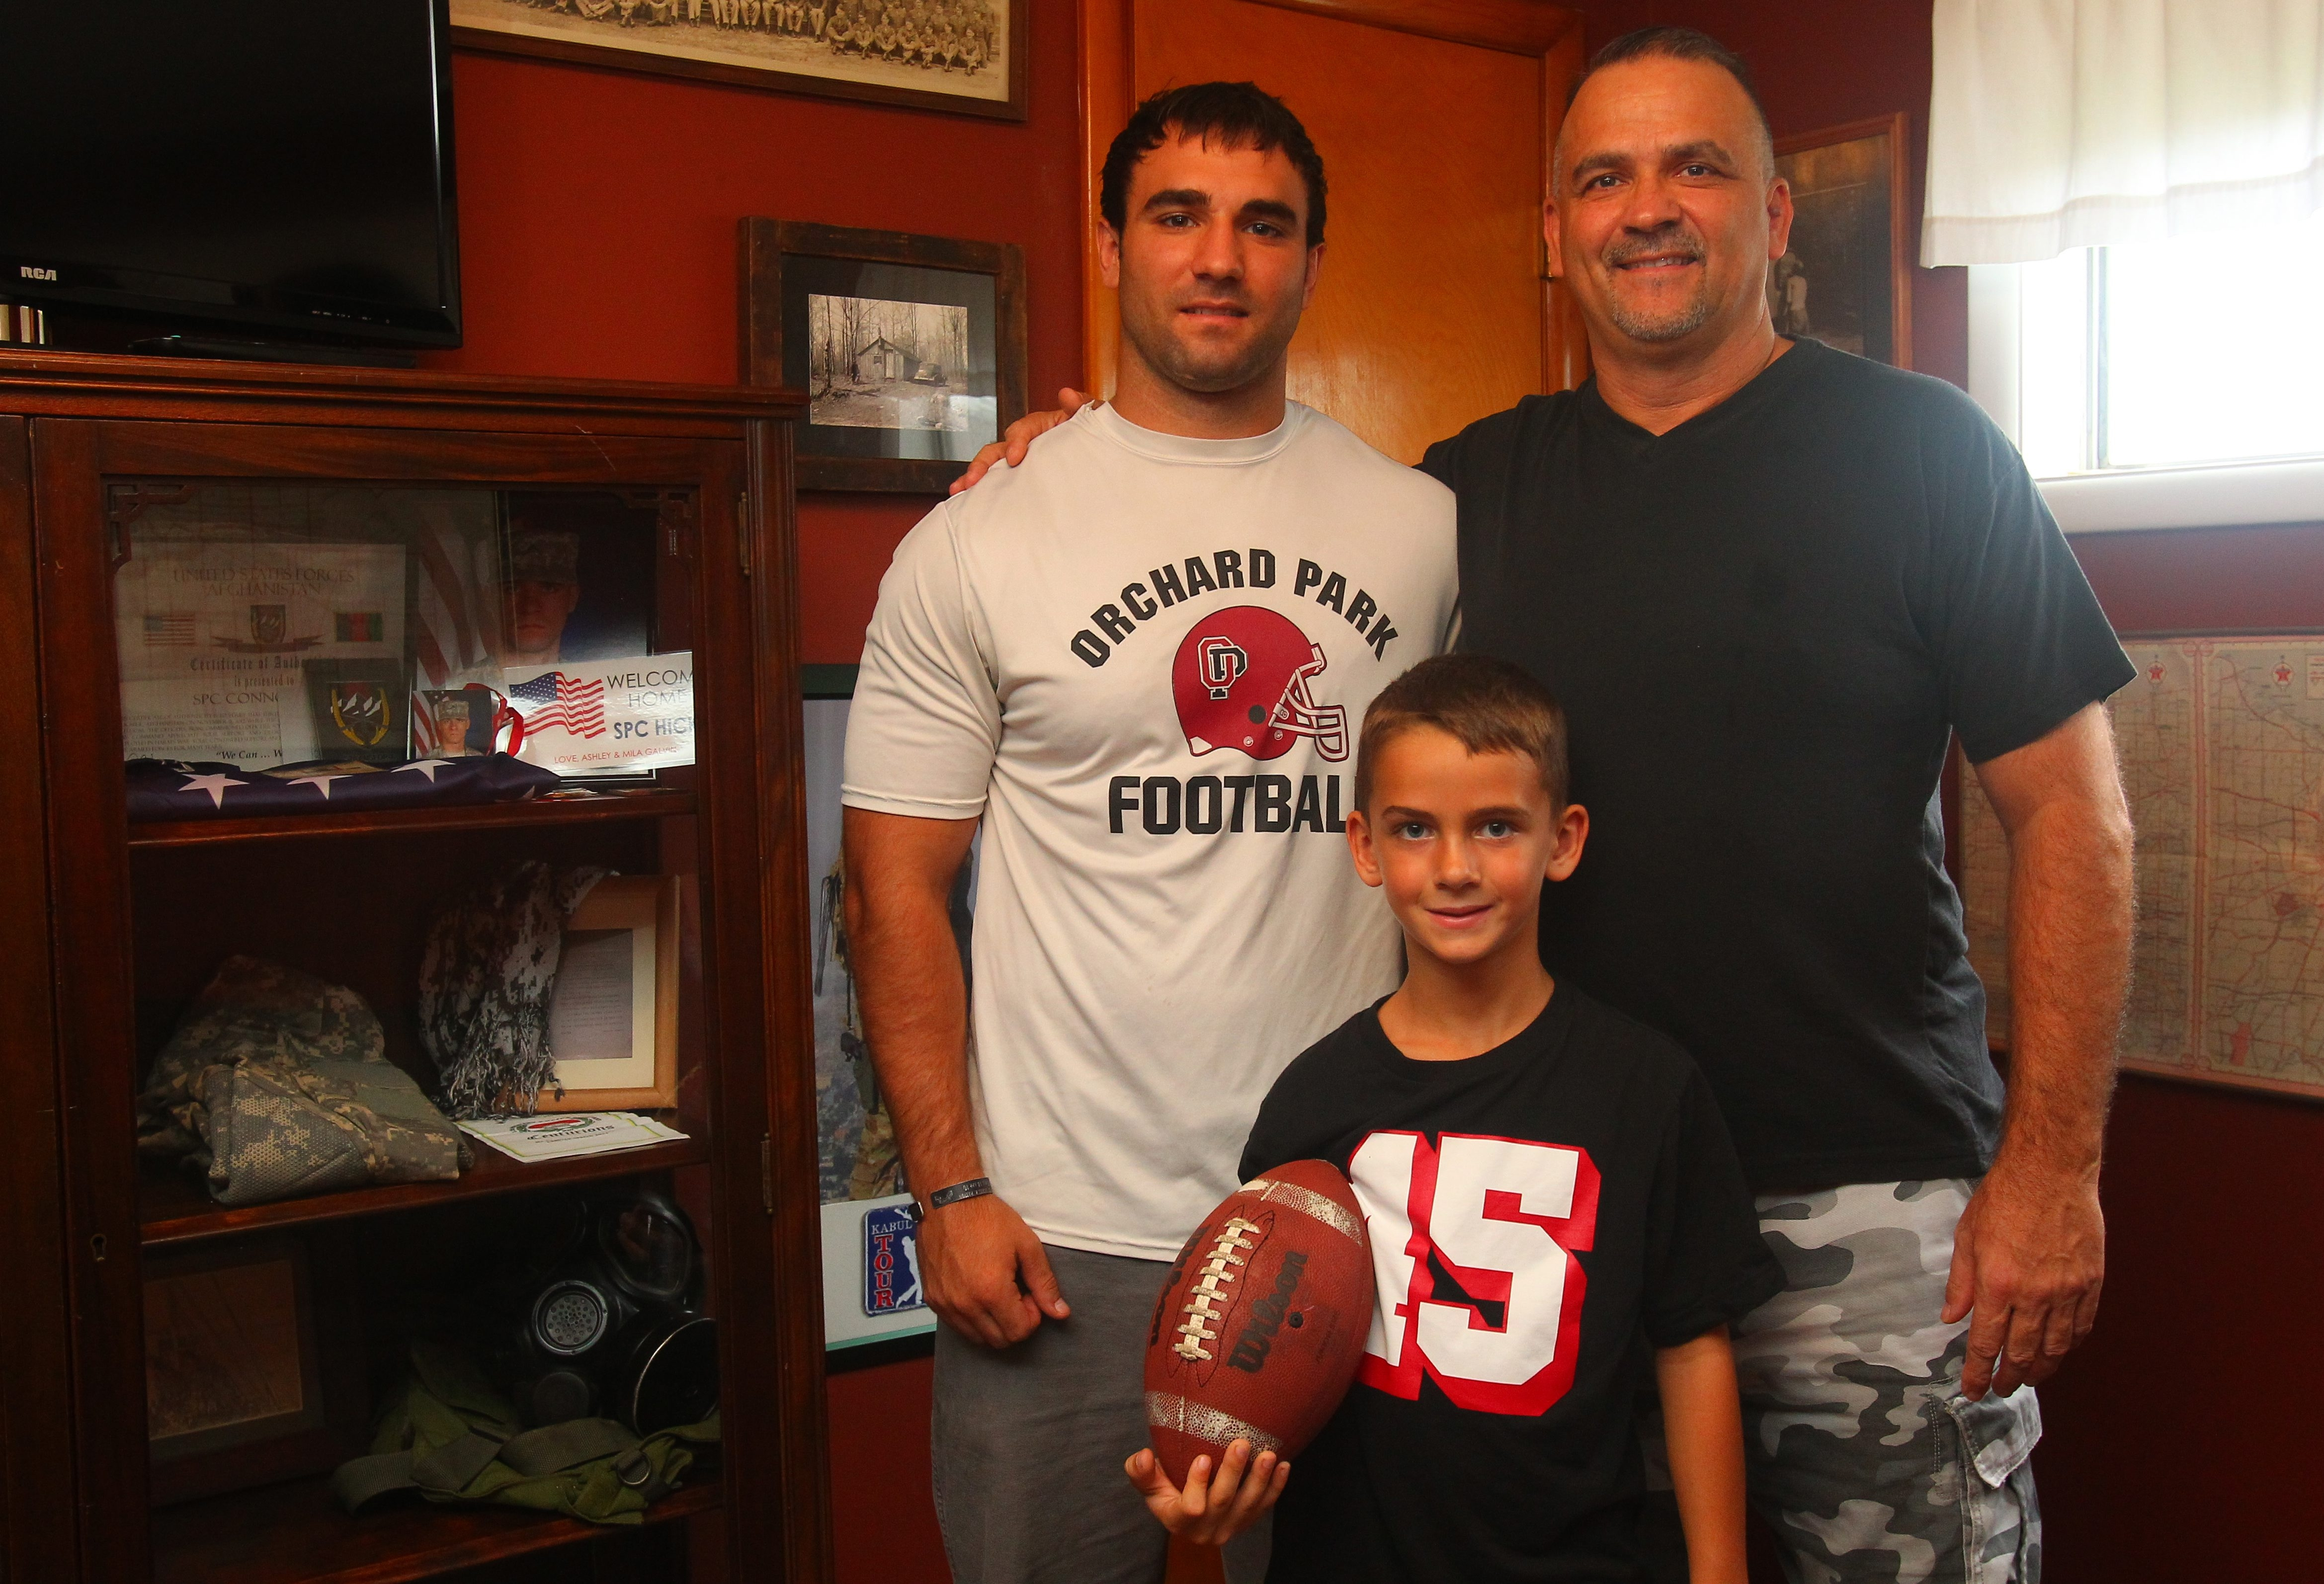 Dave Hicks was happy when his son Cameron played football. His youngest son, Mason,  may not get that chance.